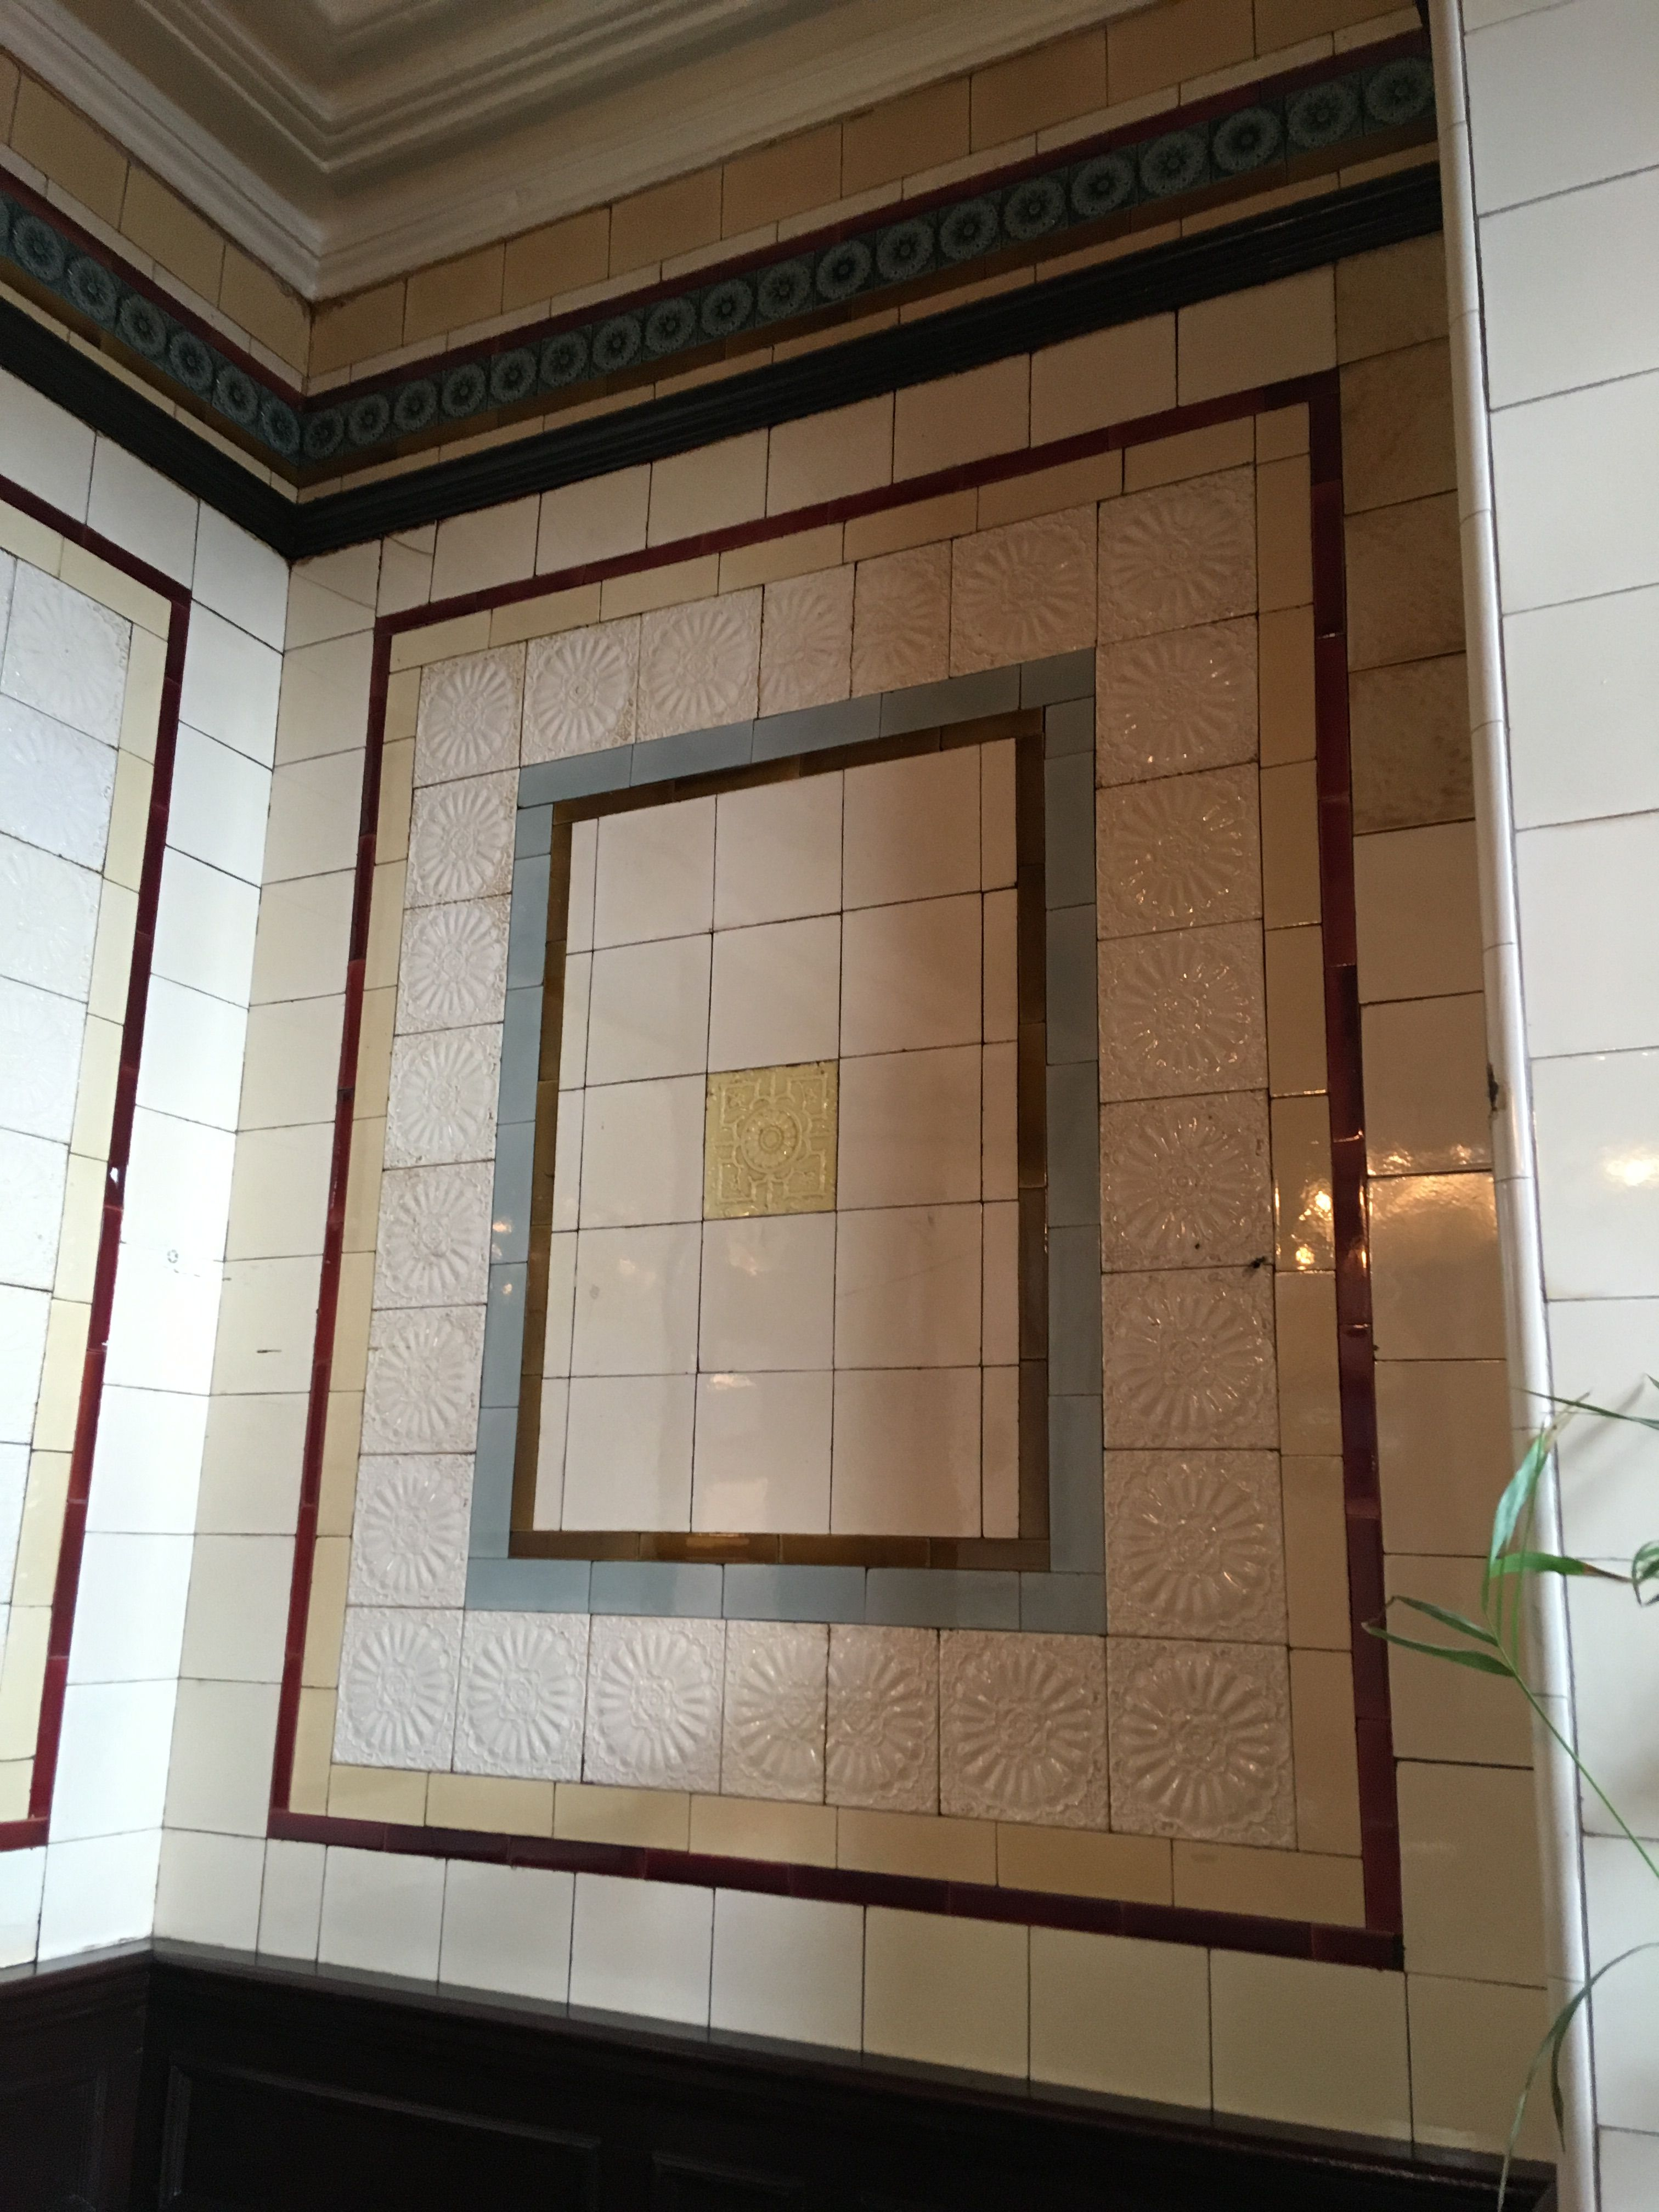 Late Victorian wall tiles at The Woodman pub in Birmingham ...